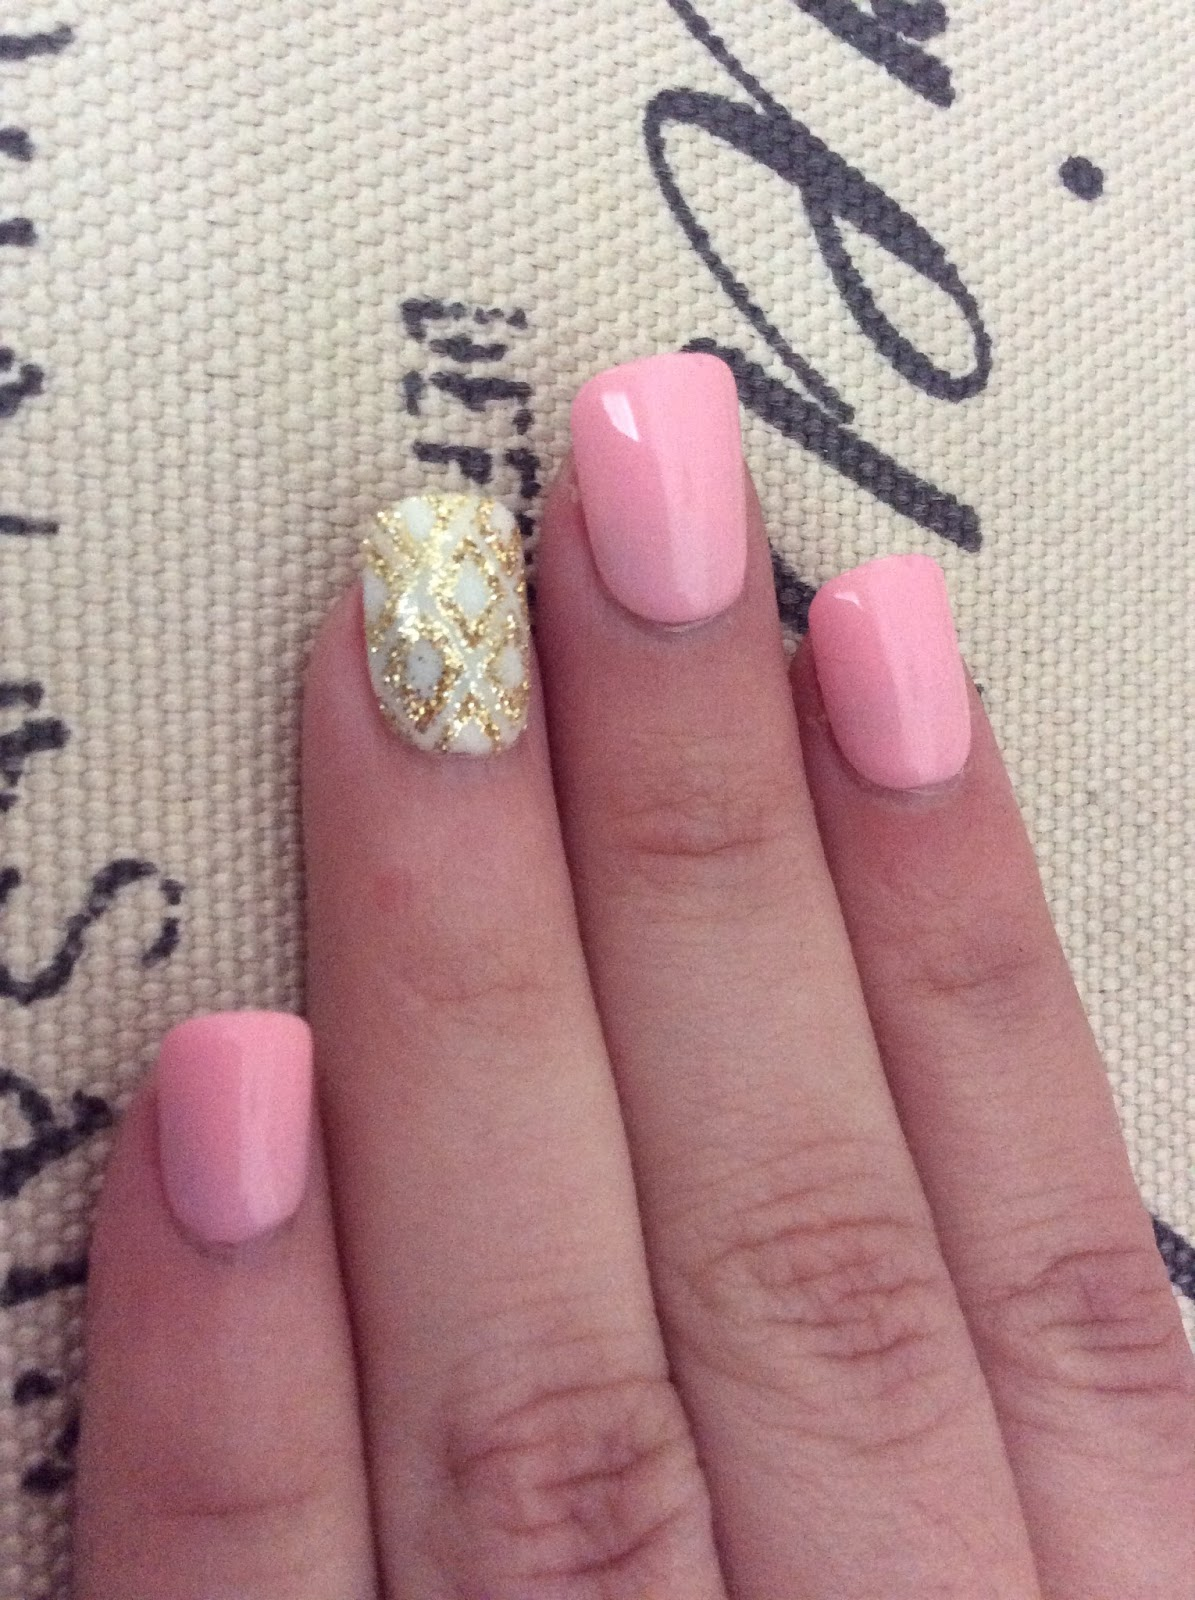 Nesca\'s Nook: Attention Busy Moms: Get a Salon-Quality Manicure At ...